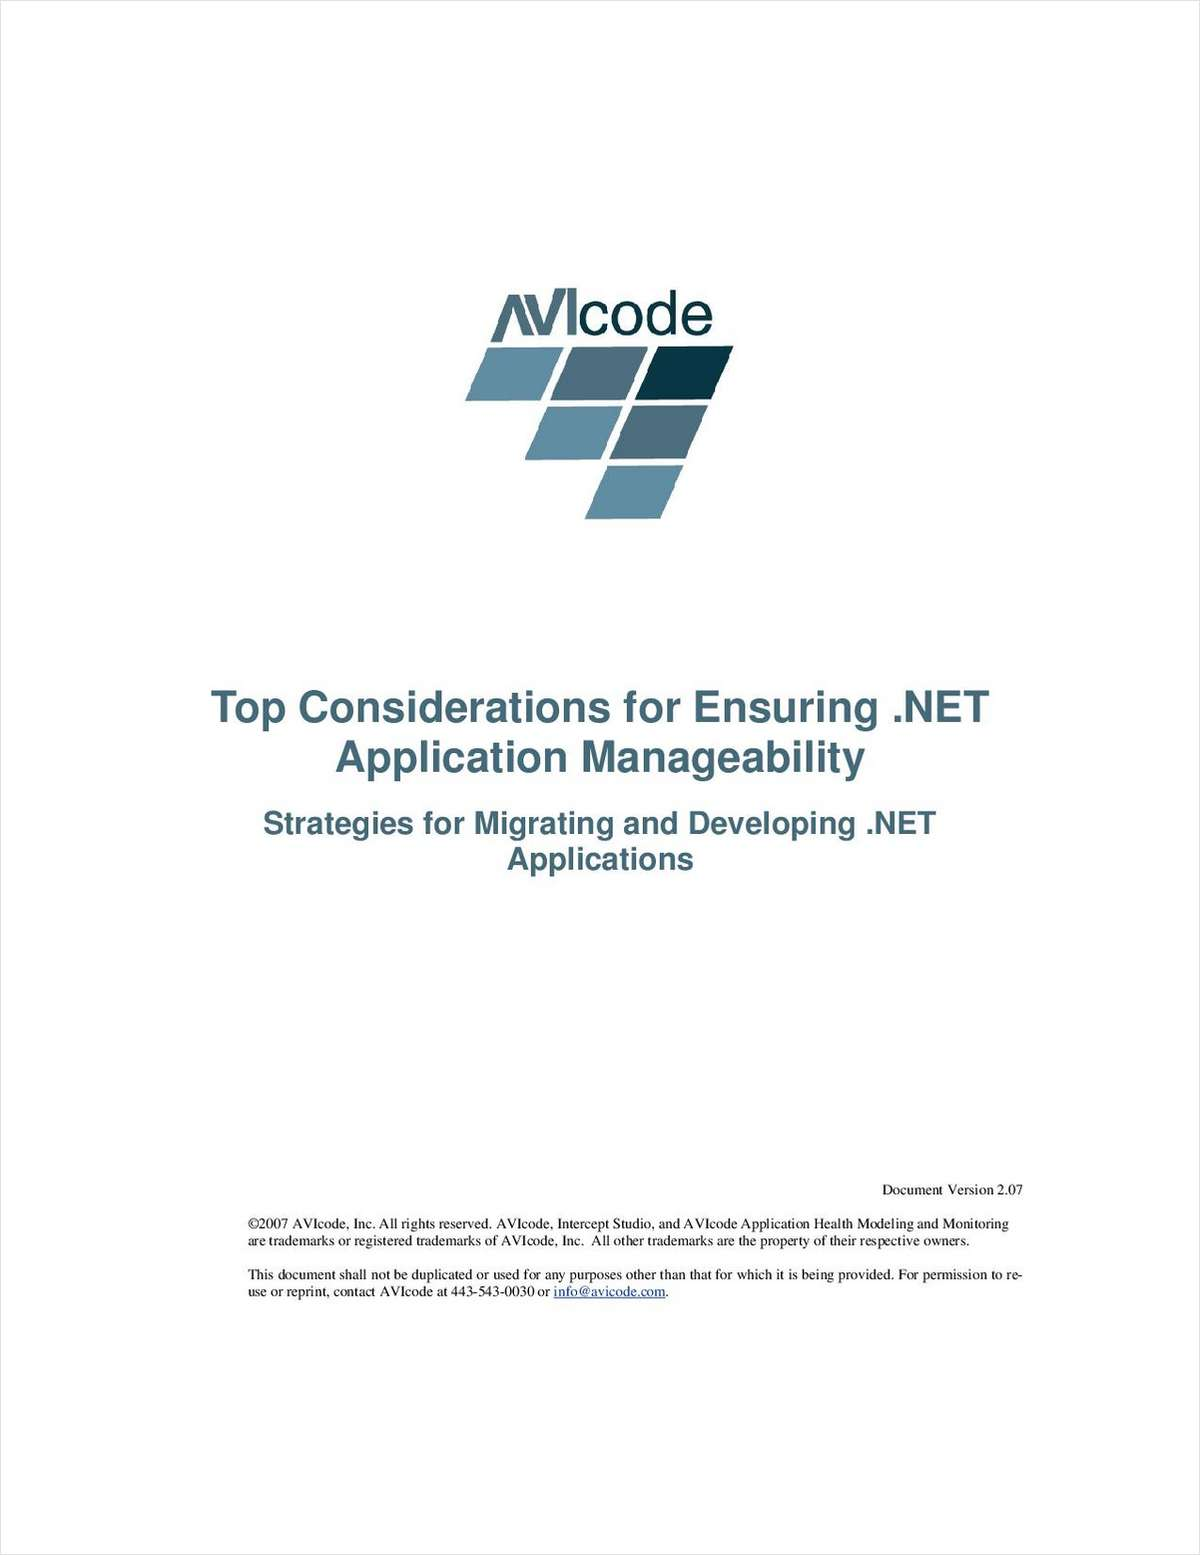 Top Considerations for Ensuring .NET Application Manageability